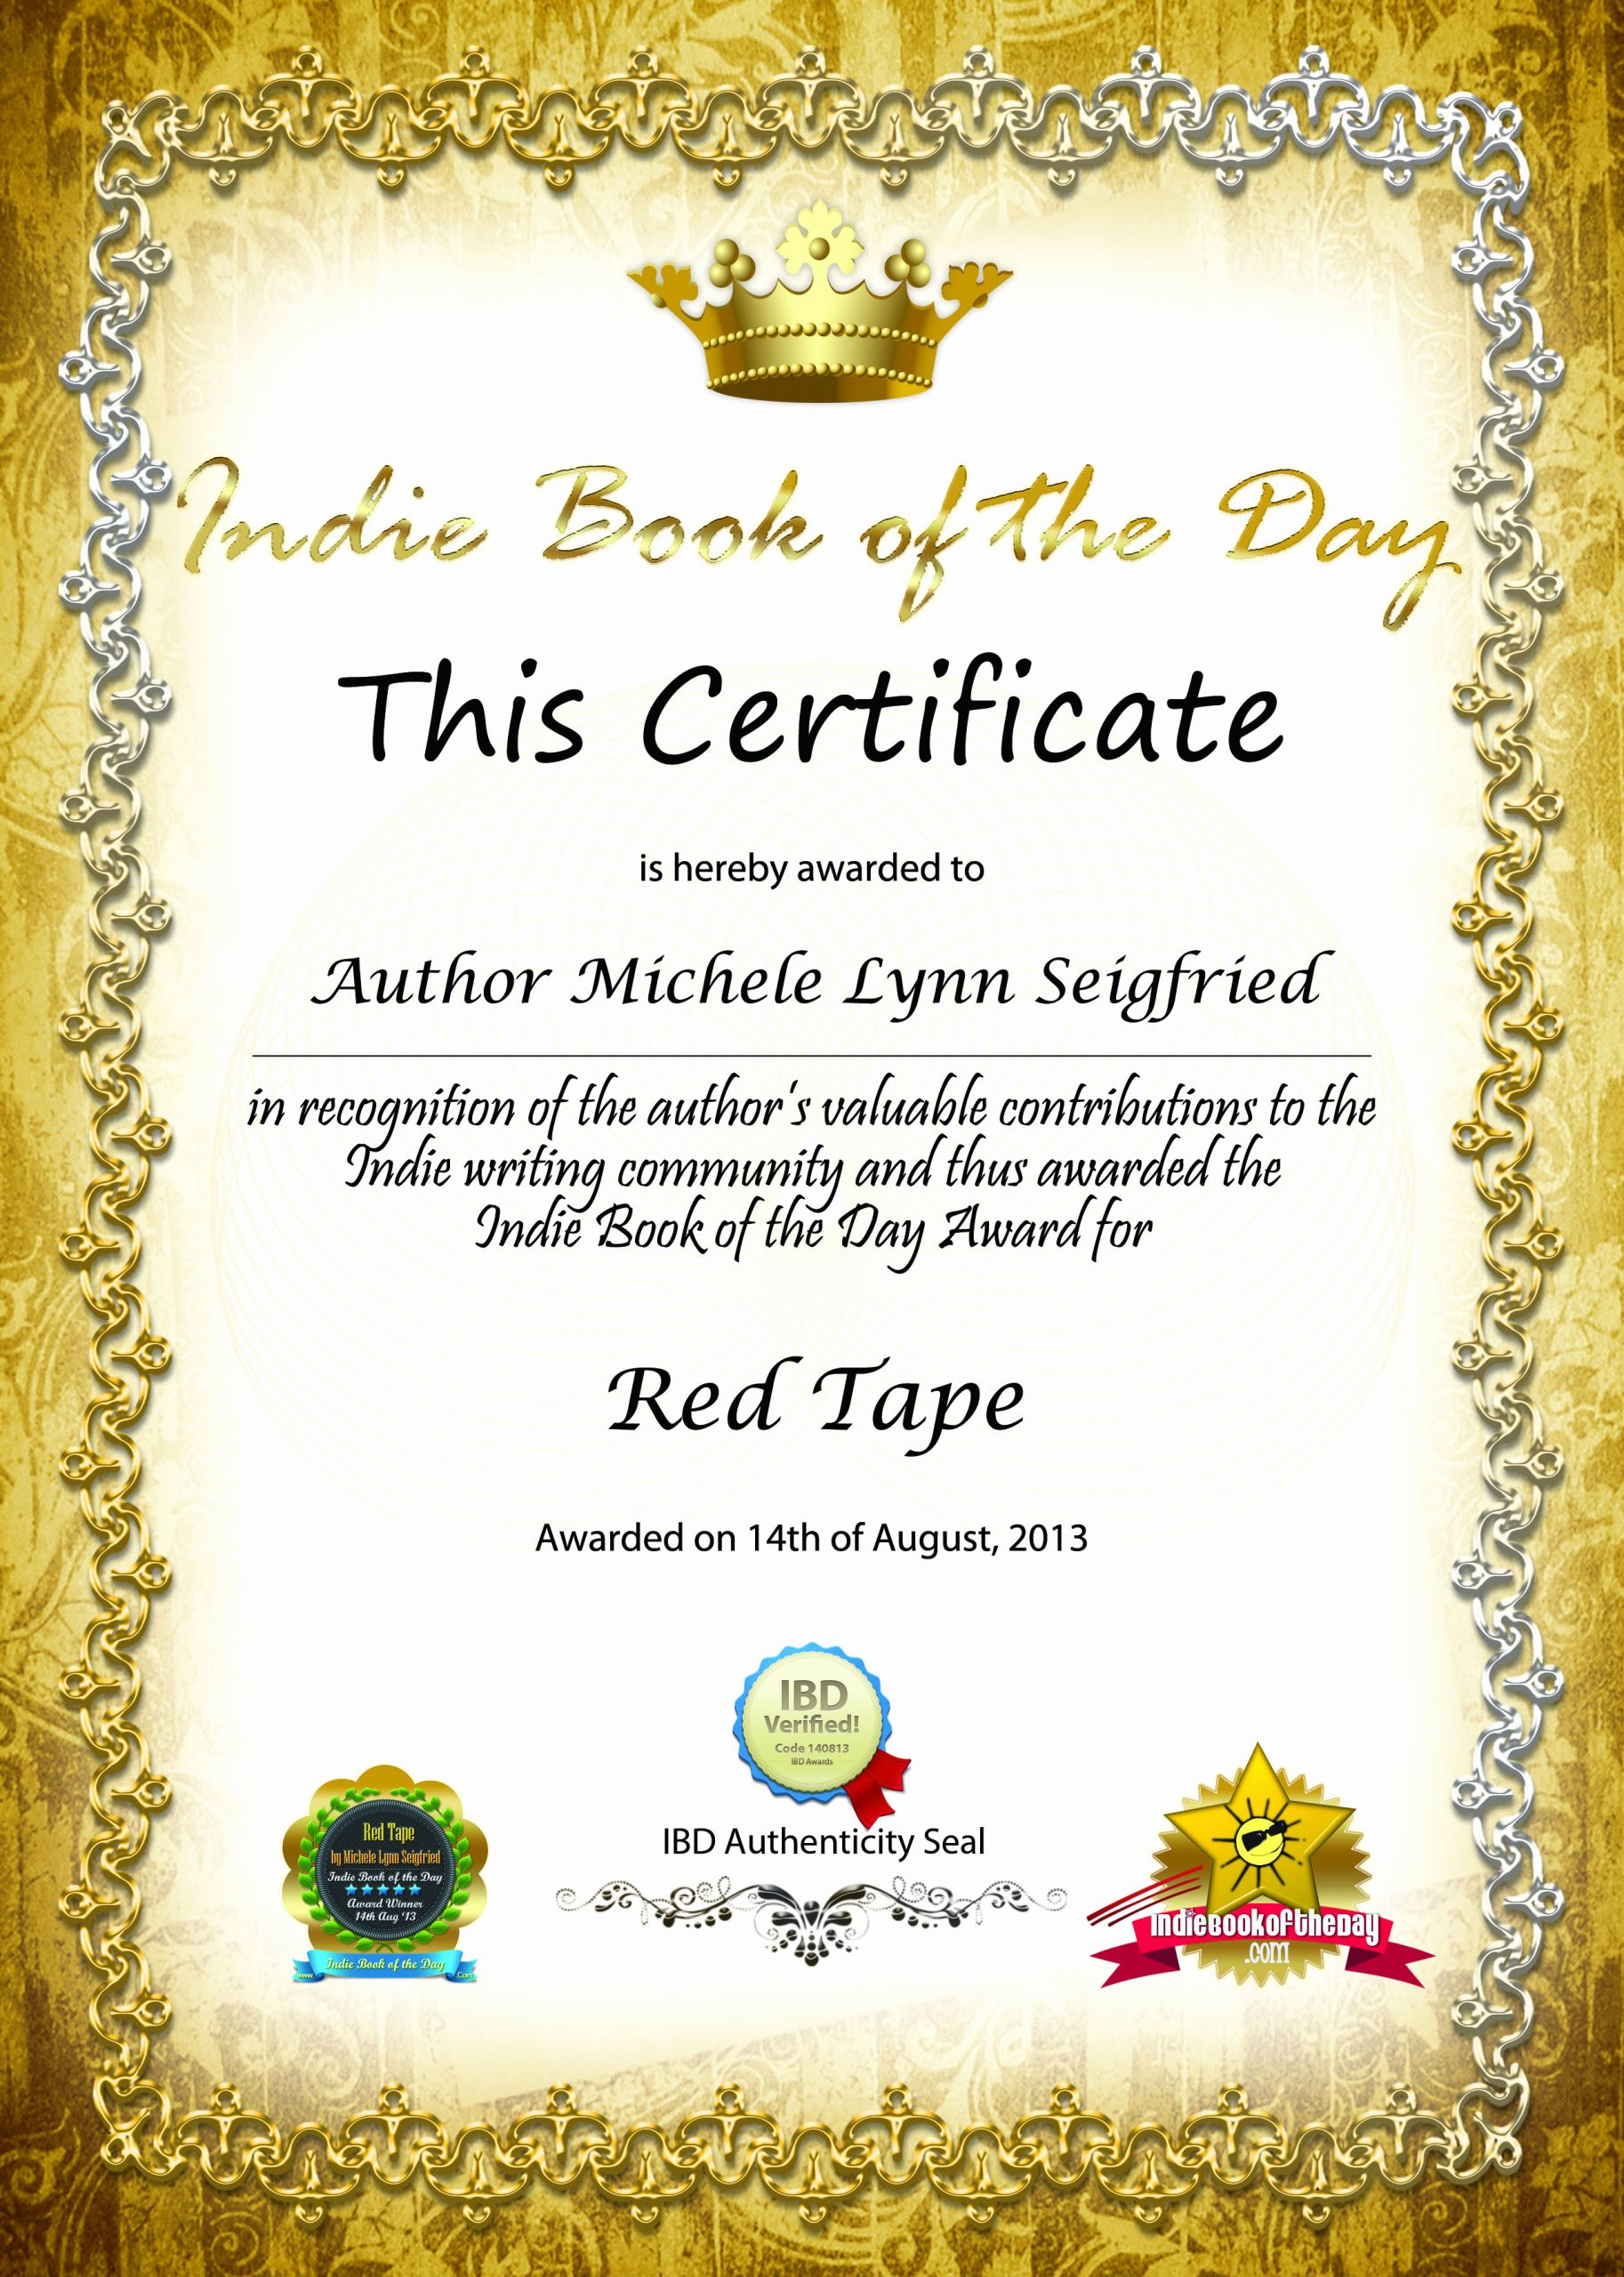 This Certificate is Awarded to Unique Awards – Michele Lynn Seigfried